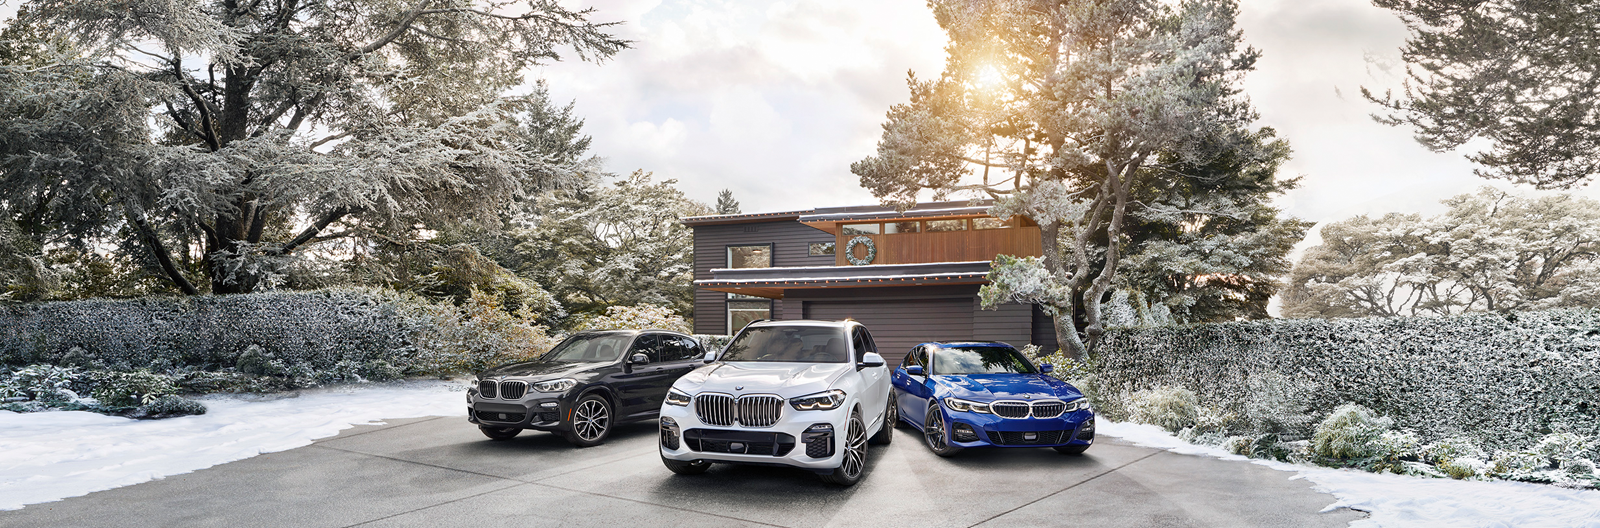 BMW Lease Offers at BMW of Minnetonka